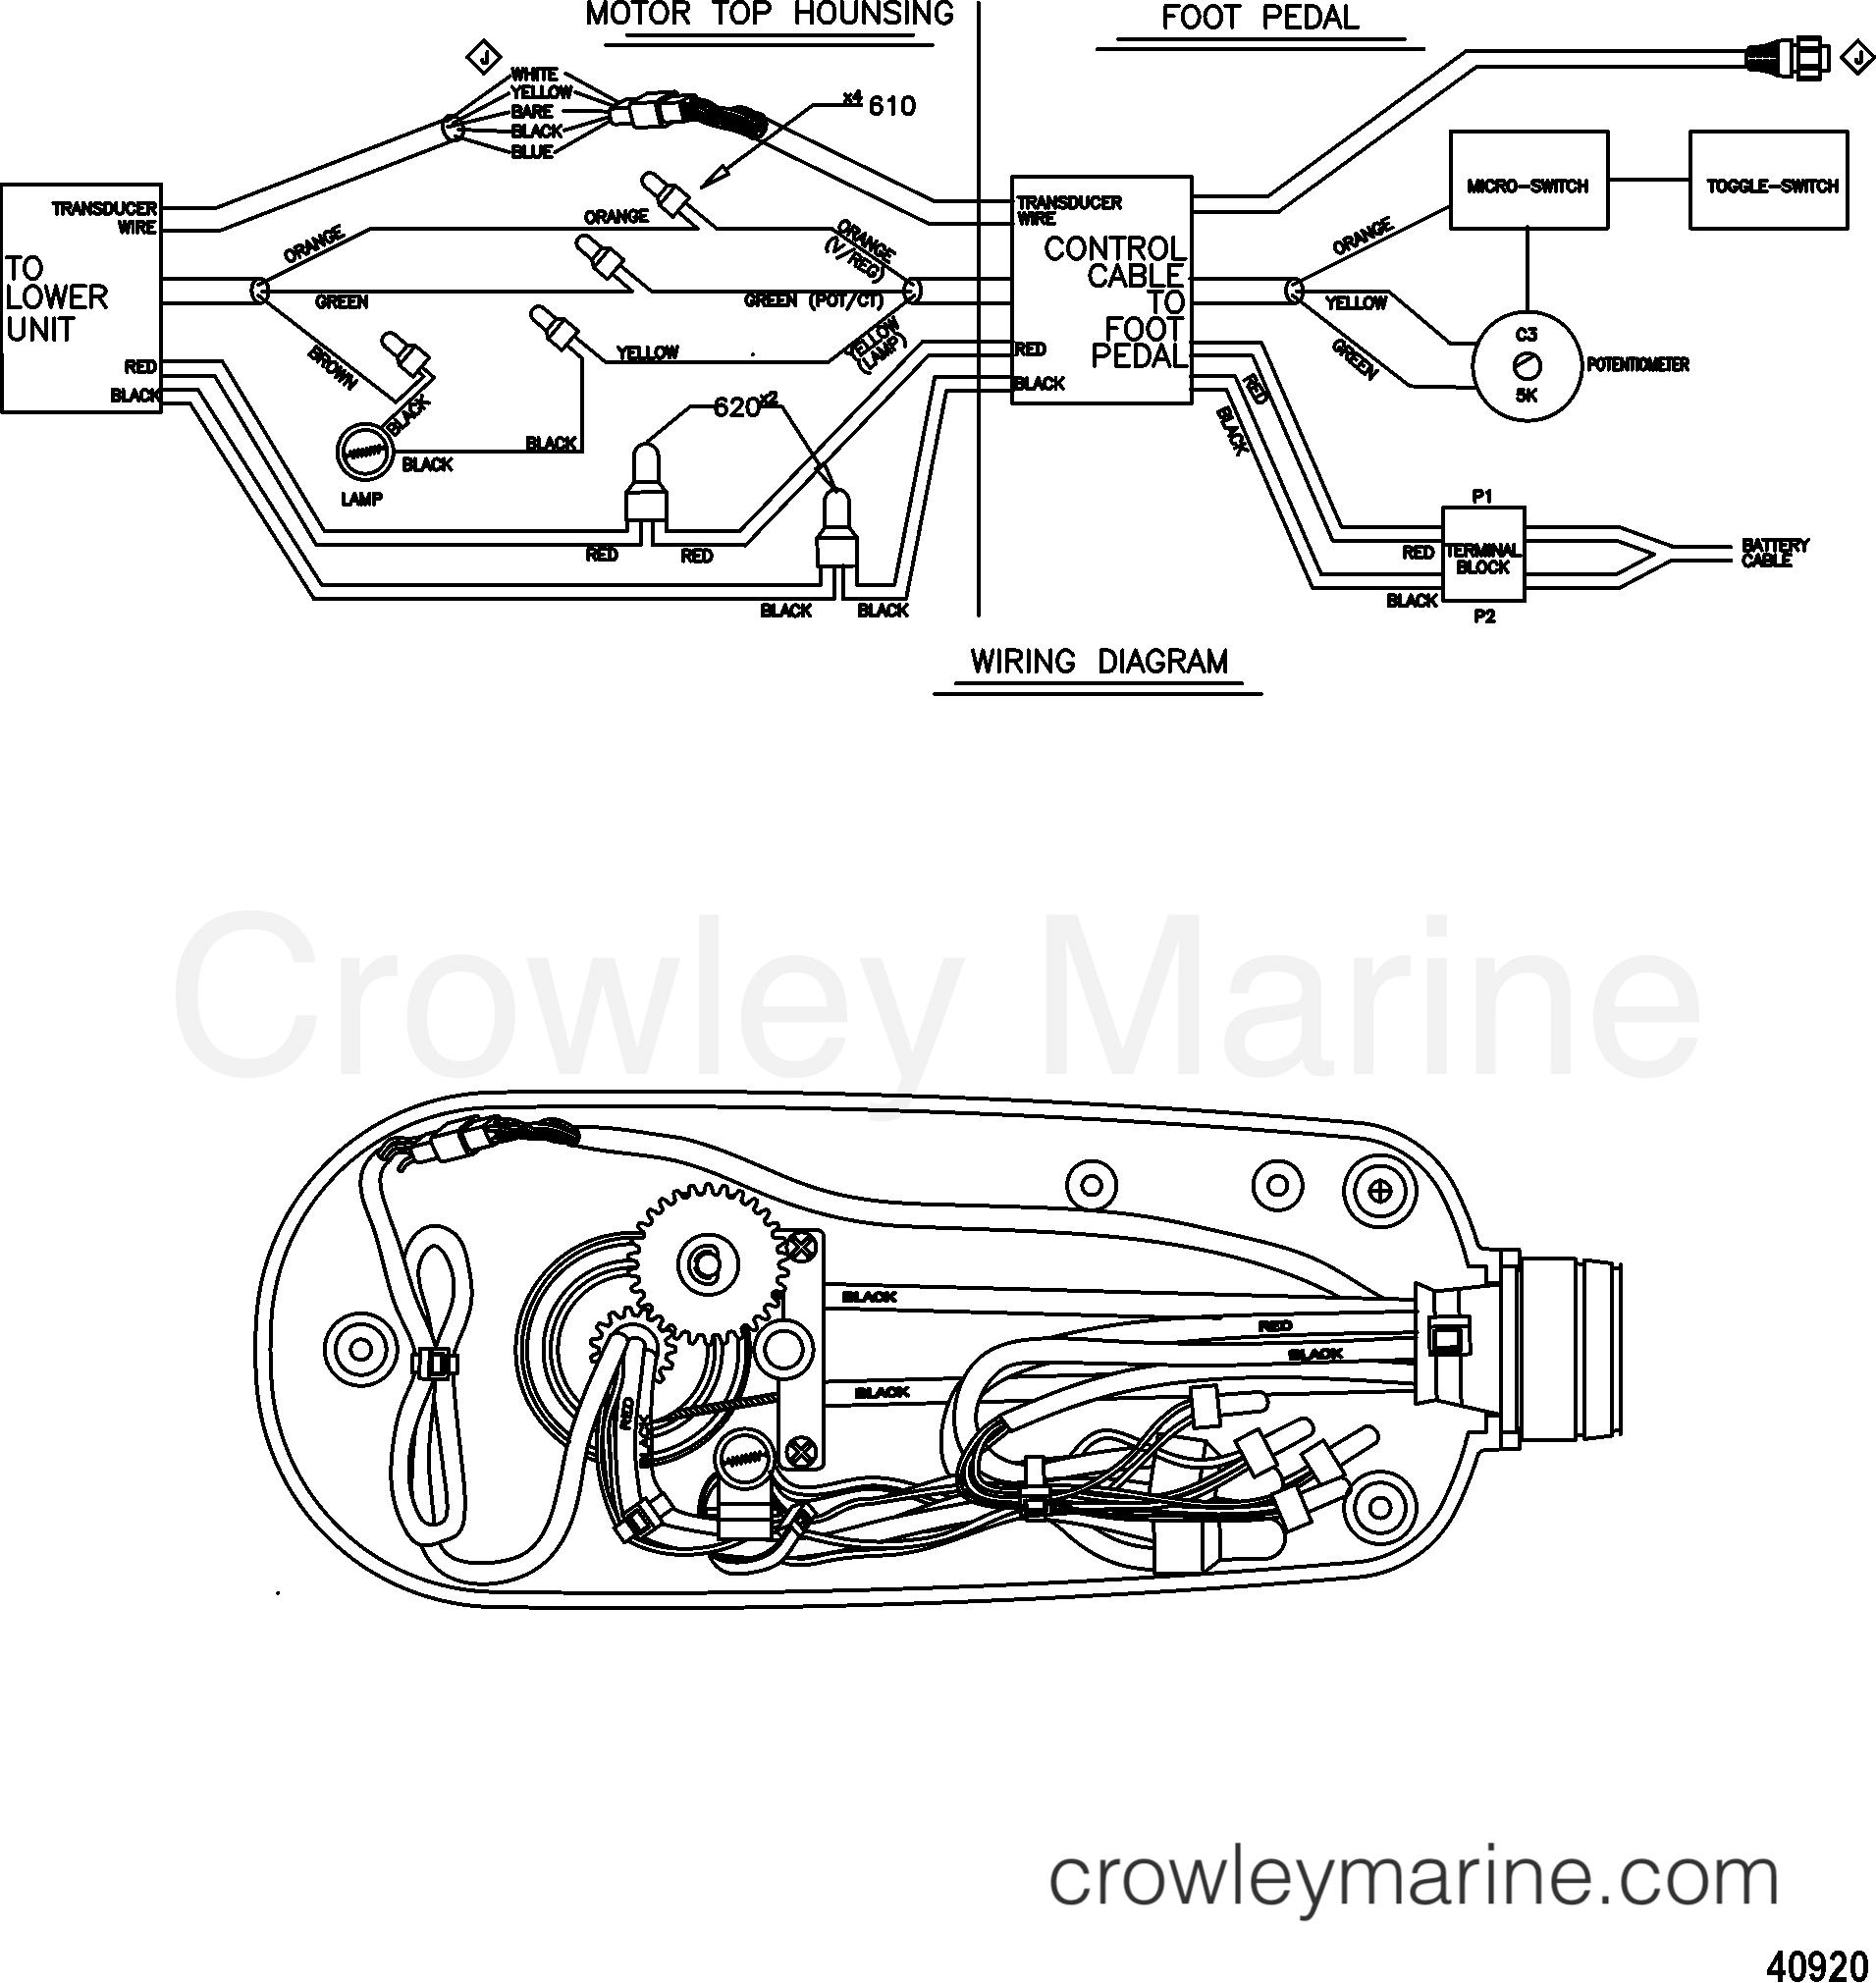 hight resolution of motorguide wiring diagram wiring diagrams motorguide x3 wiring diagram motorguide wiring diagram source wiring diagram motorguide foot pedal free download